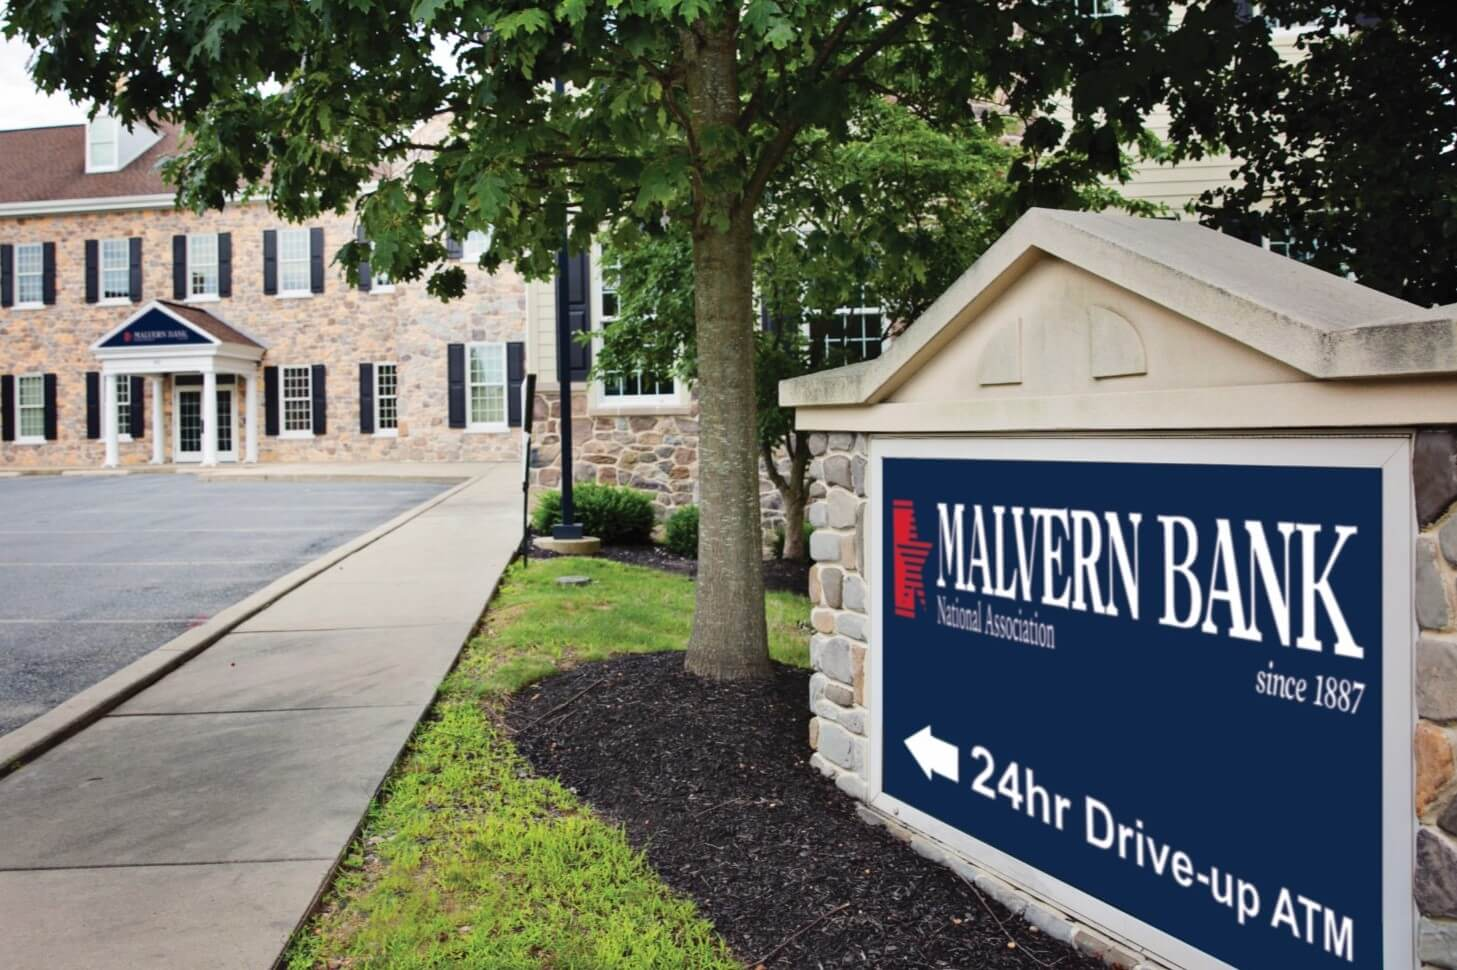 MONTCO Careers – Malvern Bank, National Association